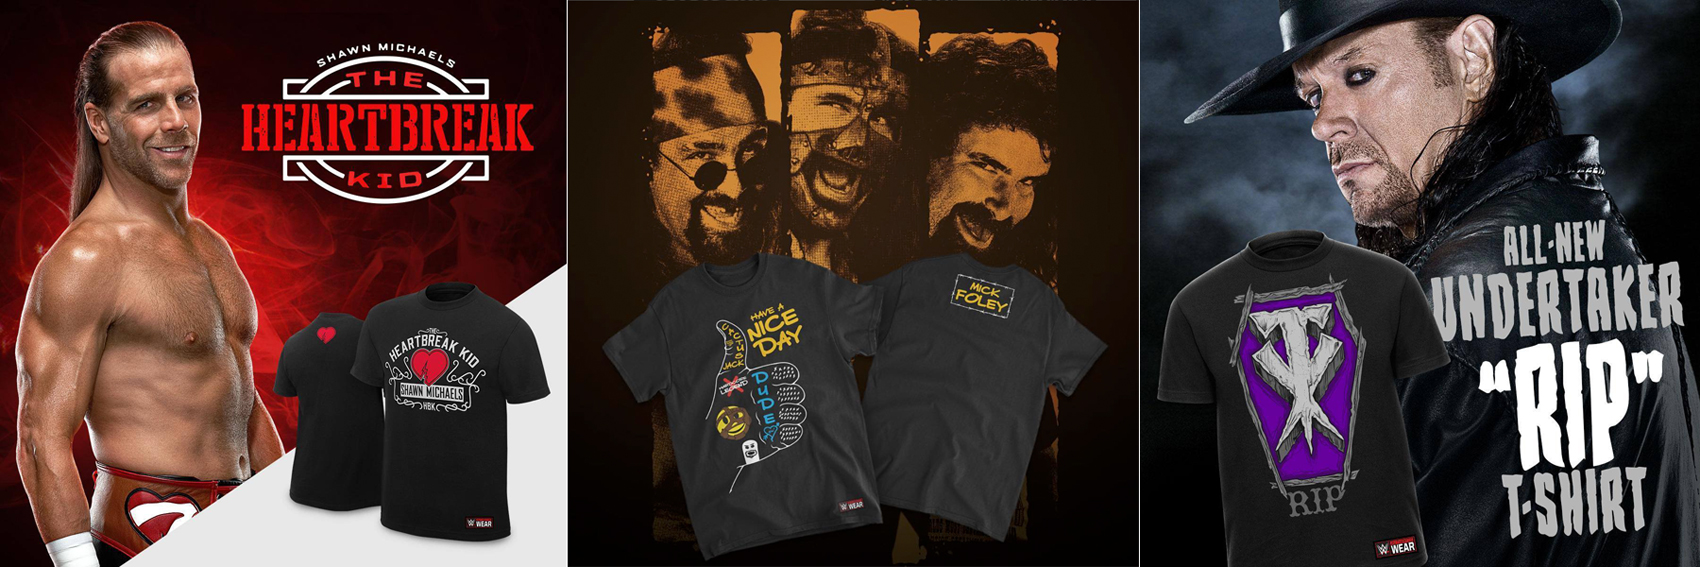 30a5d2a7d New Retro WWE Tees Mick Foley Undertaker Shawn Michaels and More ...